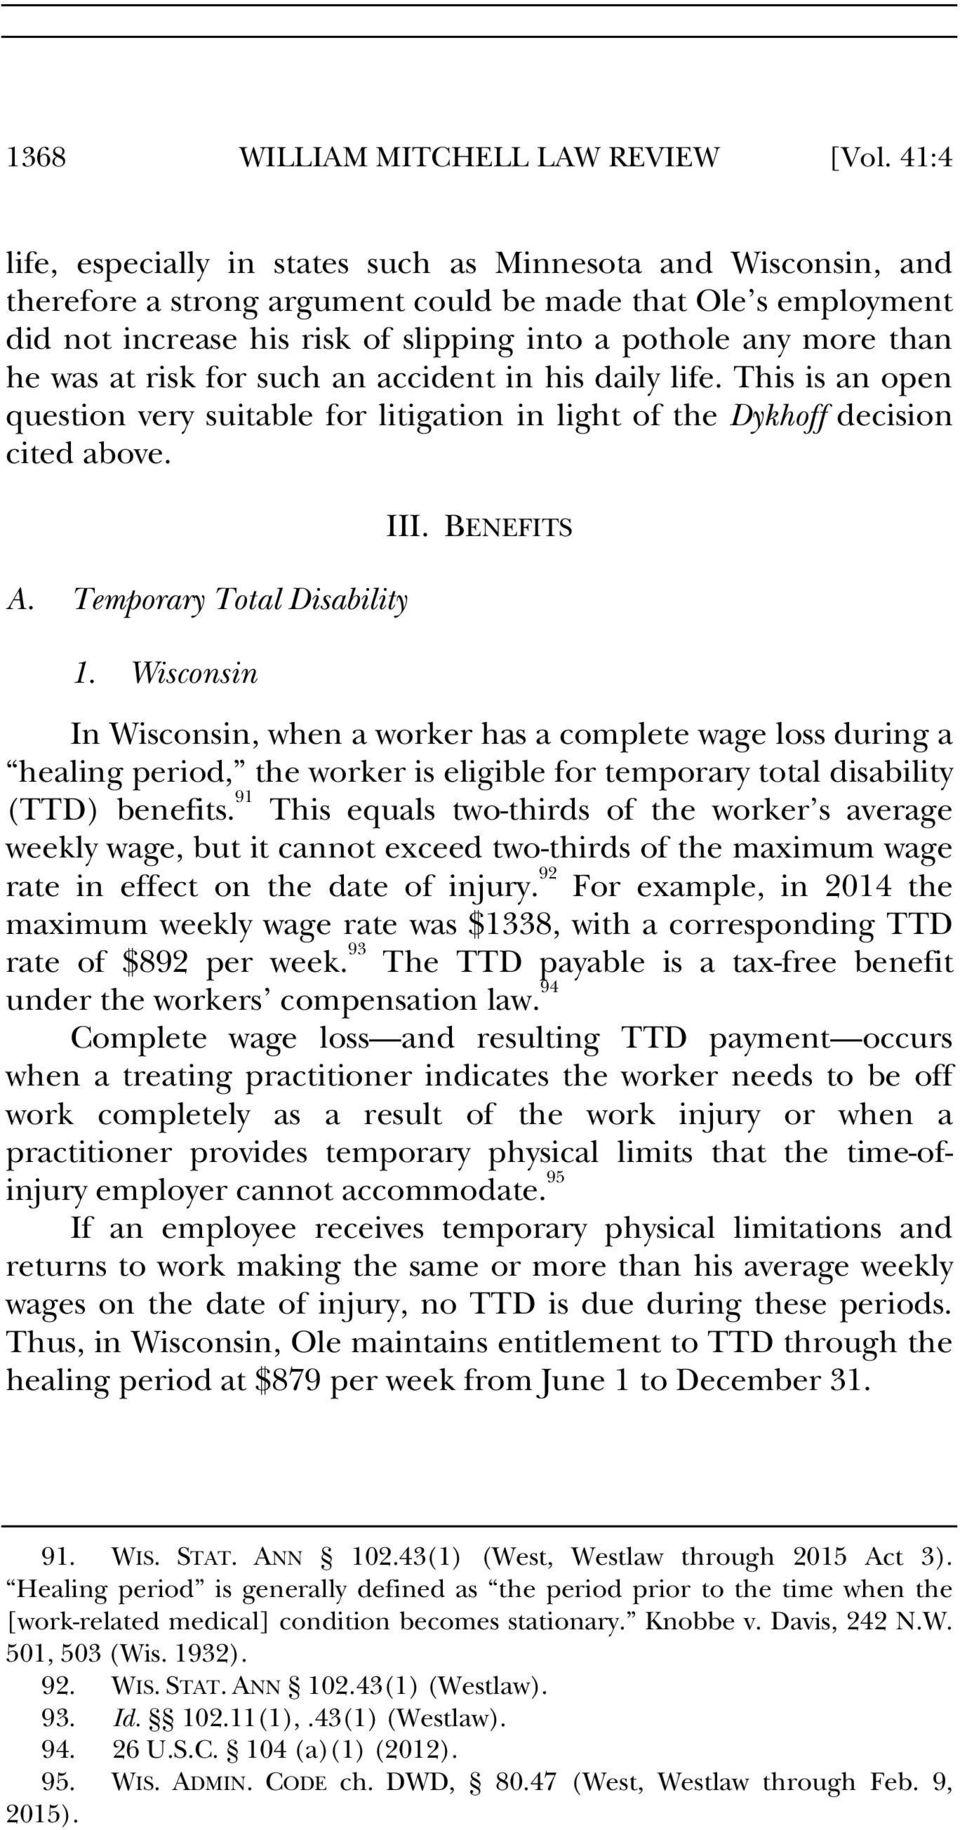 he was at risk for such an accident in his daily life. This is an open question very suitable for litigation in light of the Dykhoff decision cited above. A. Temporary Total Disability 1.